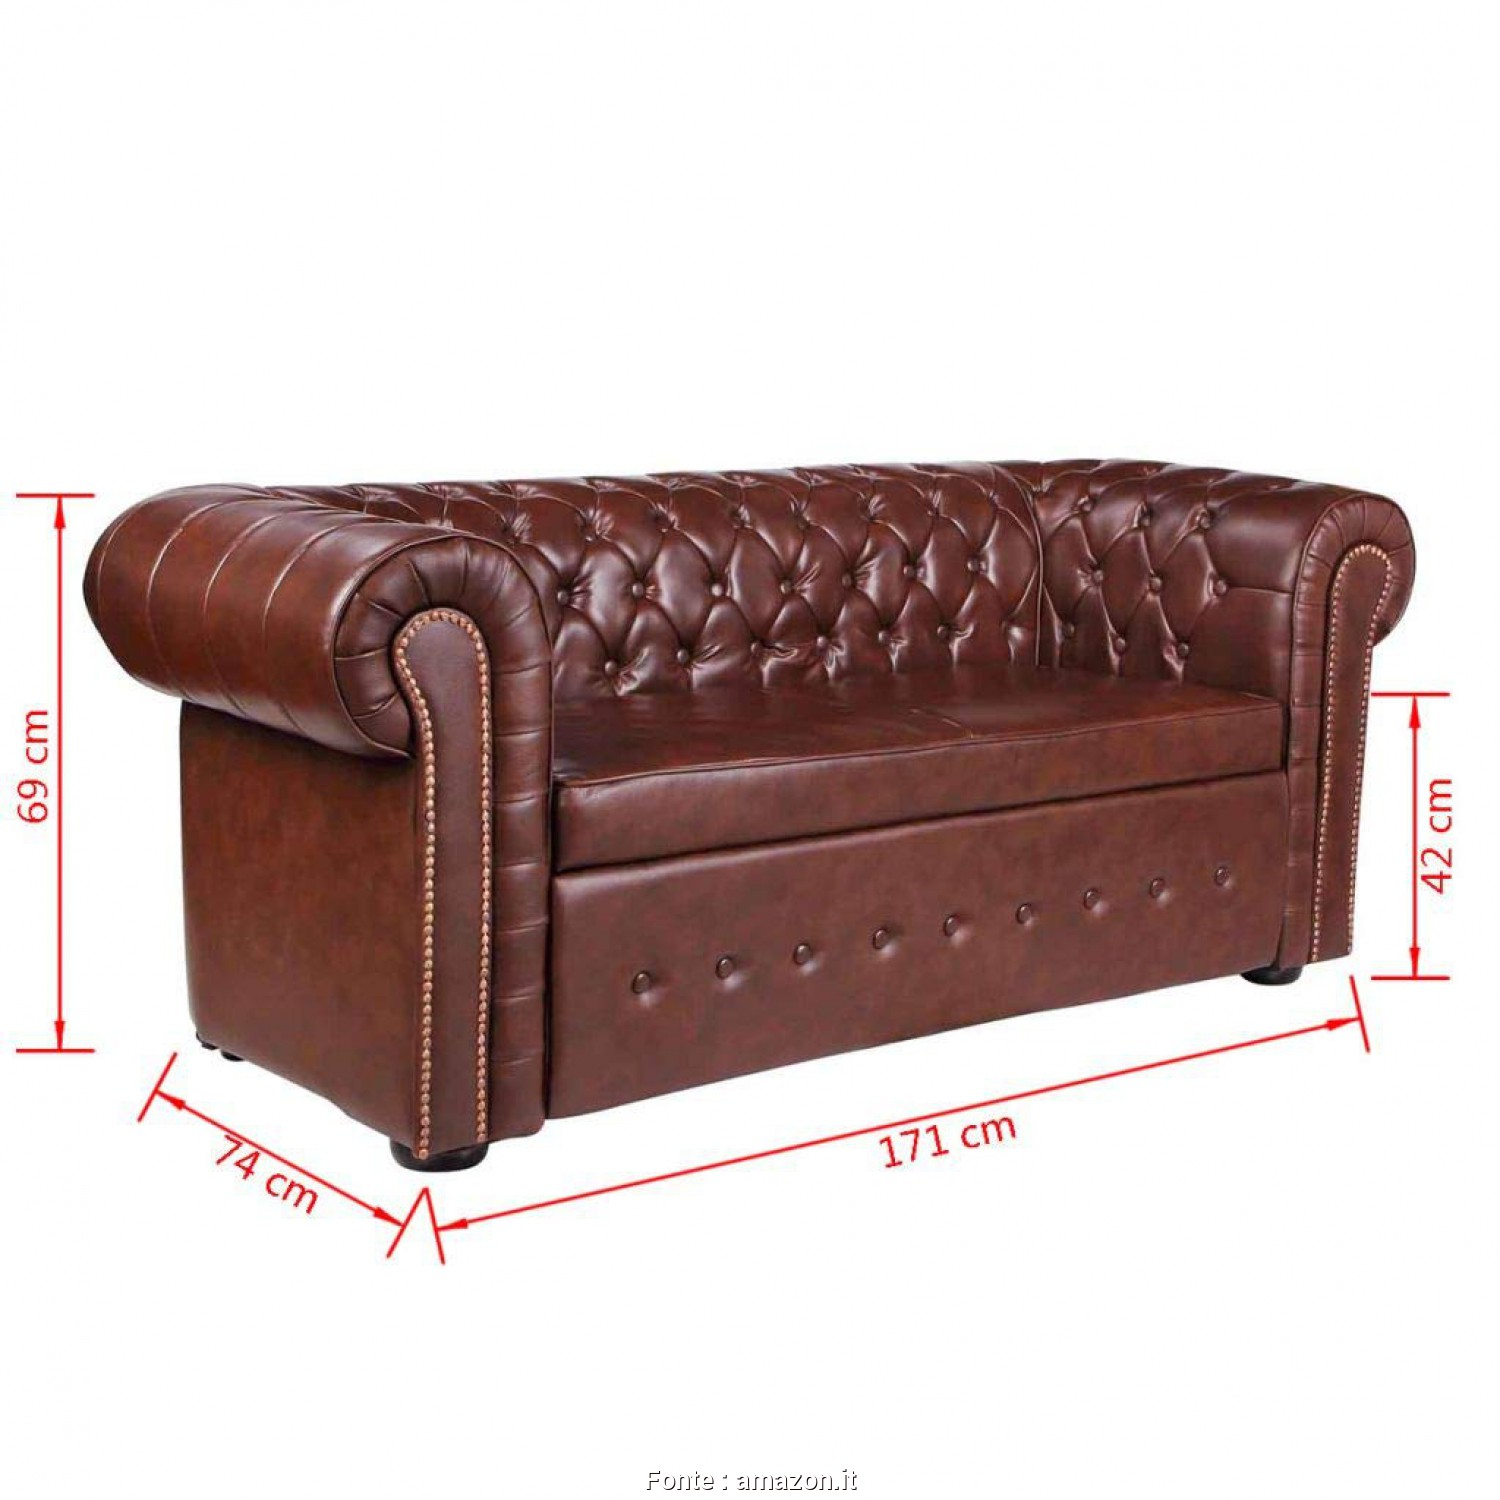 Divano Chesterfield Moderno, Loveable VidaXL DIVANI CHESTERFIELD DIVANO MODERNO CHESTERFIELD STILE CAPITONNE